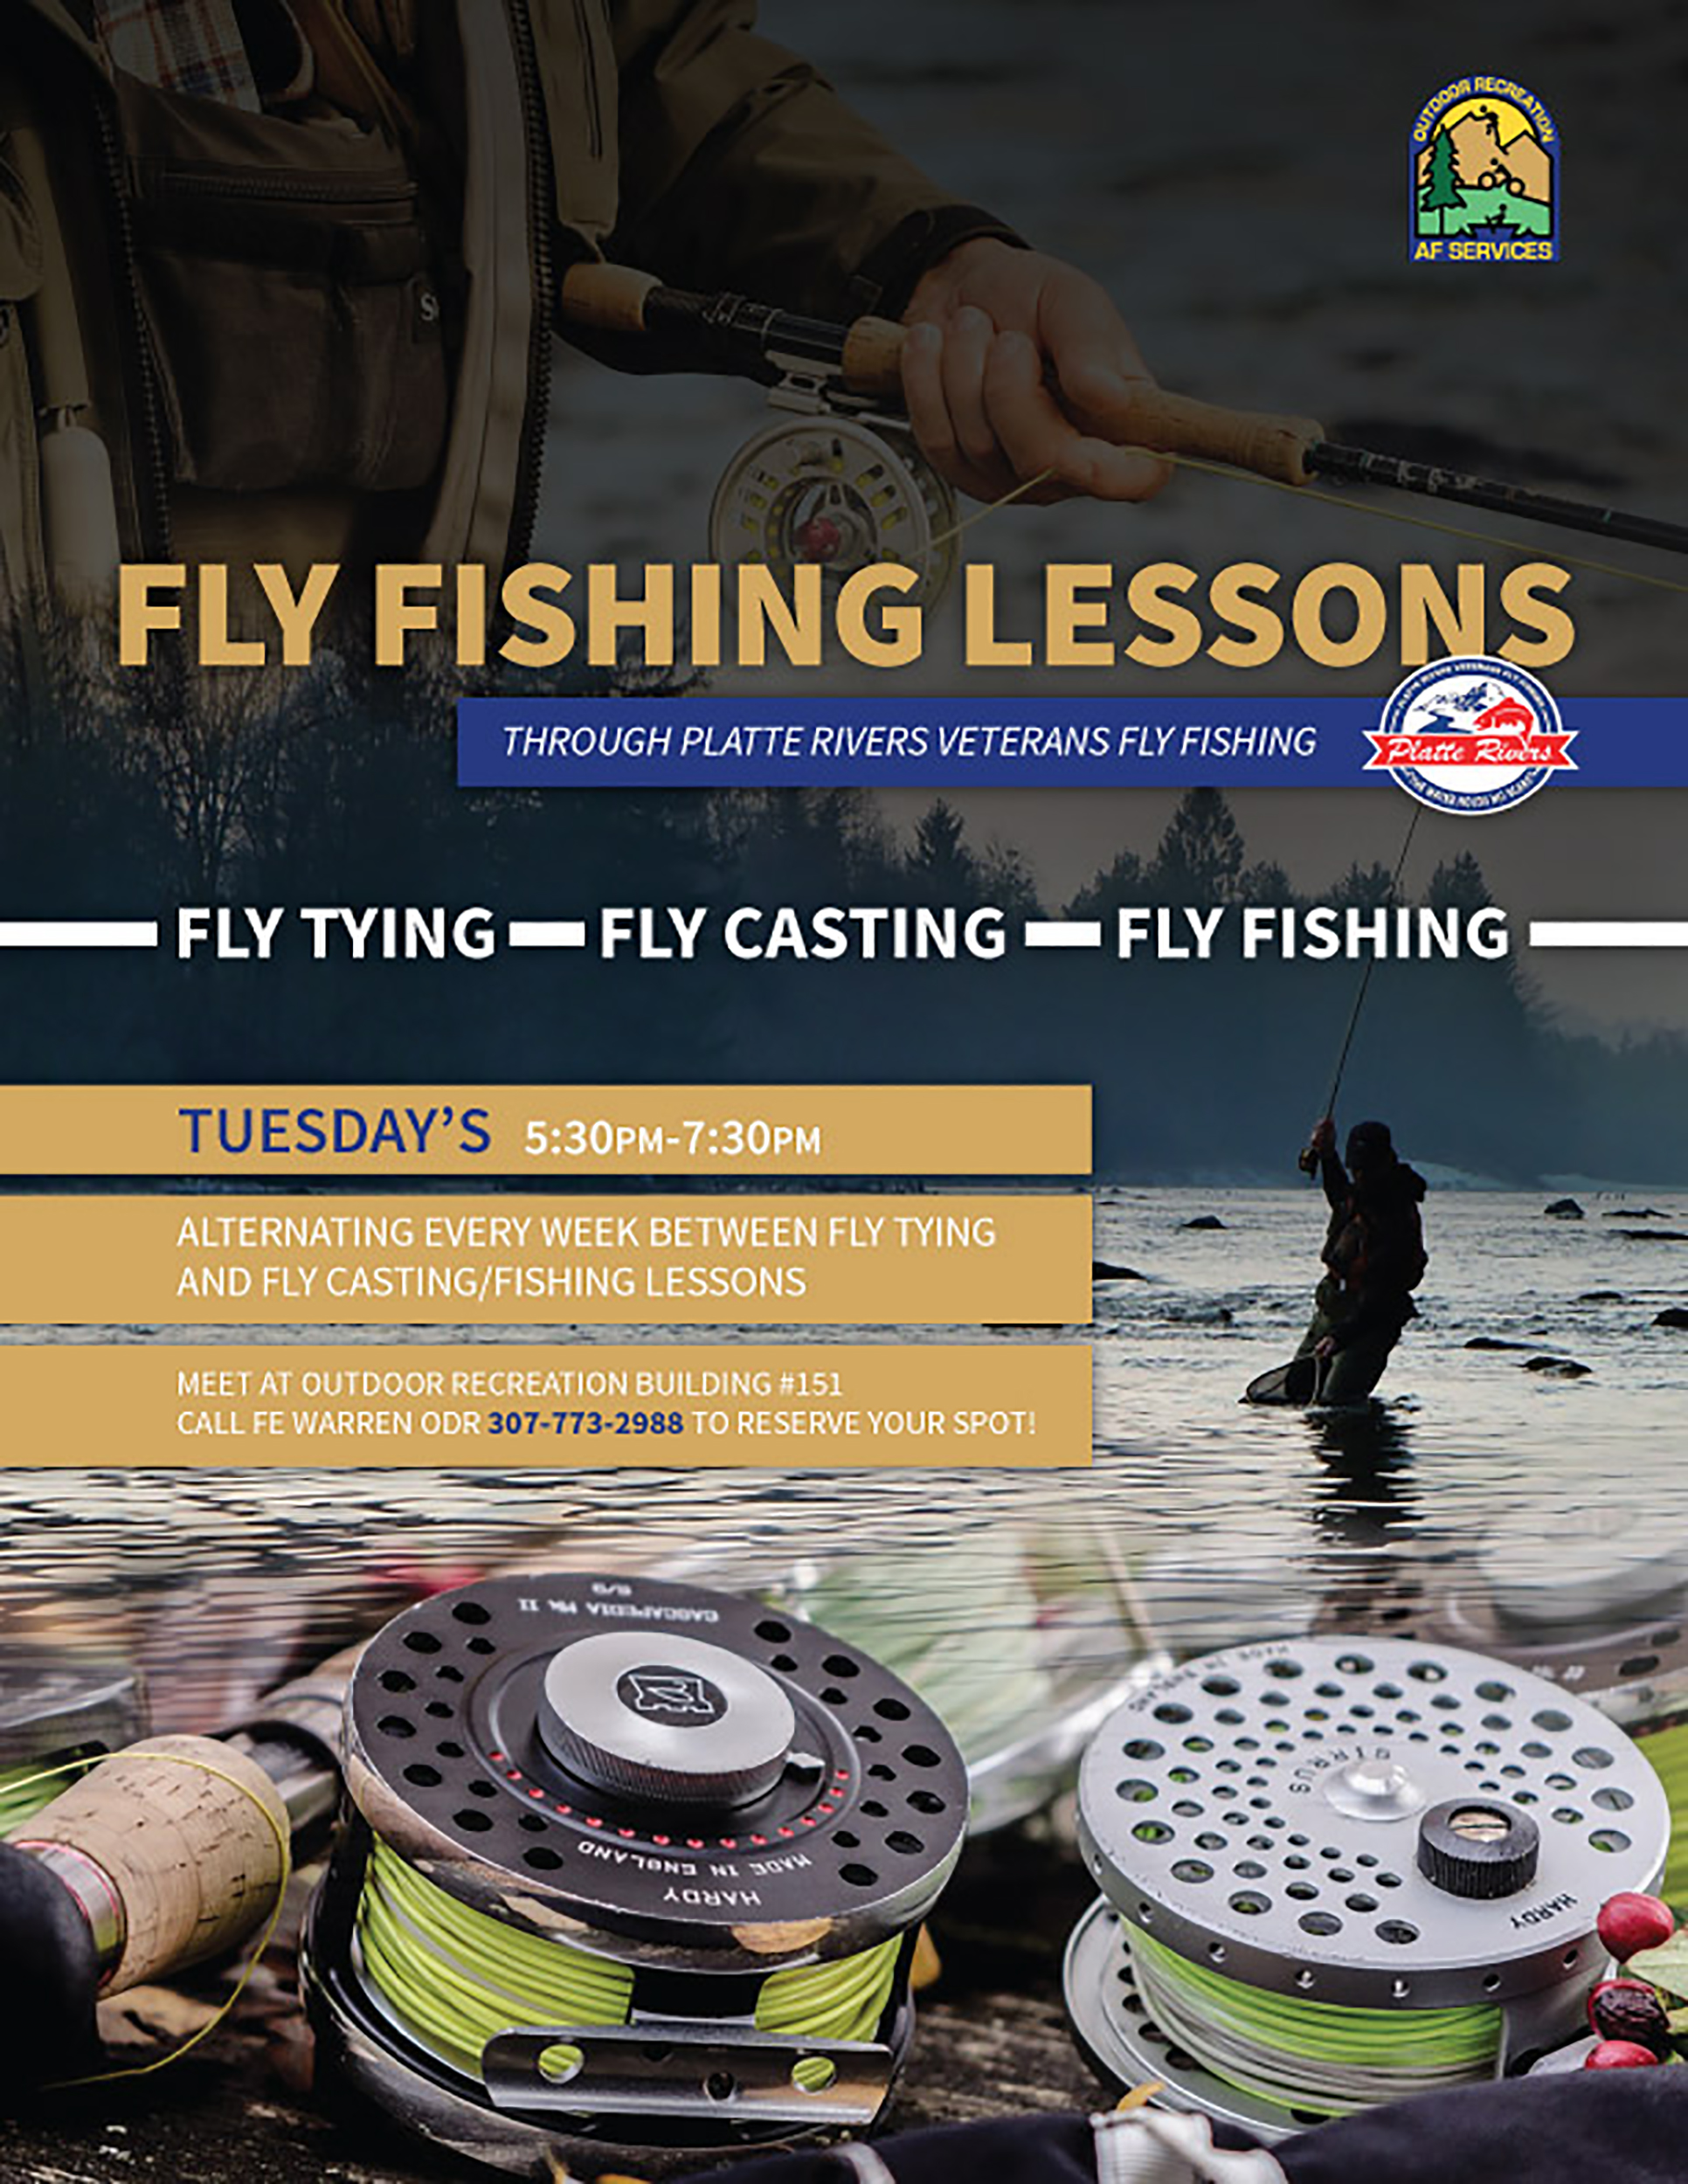 Fly-fishing-lessions-flyer.jpg